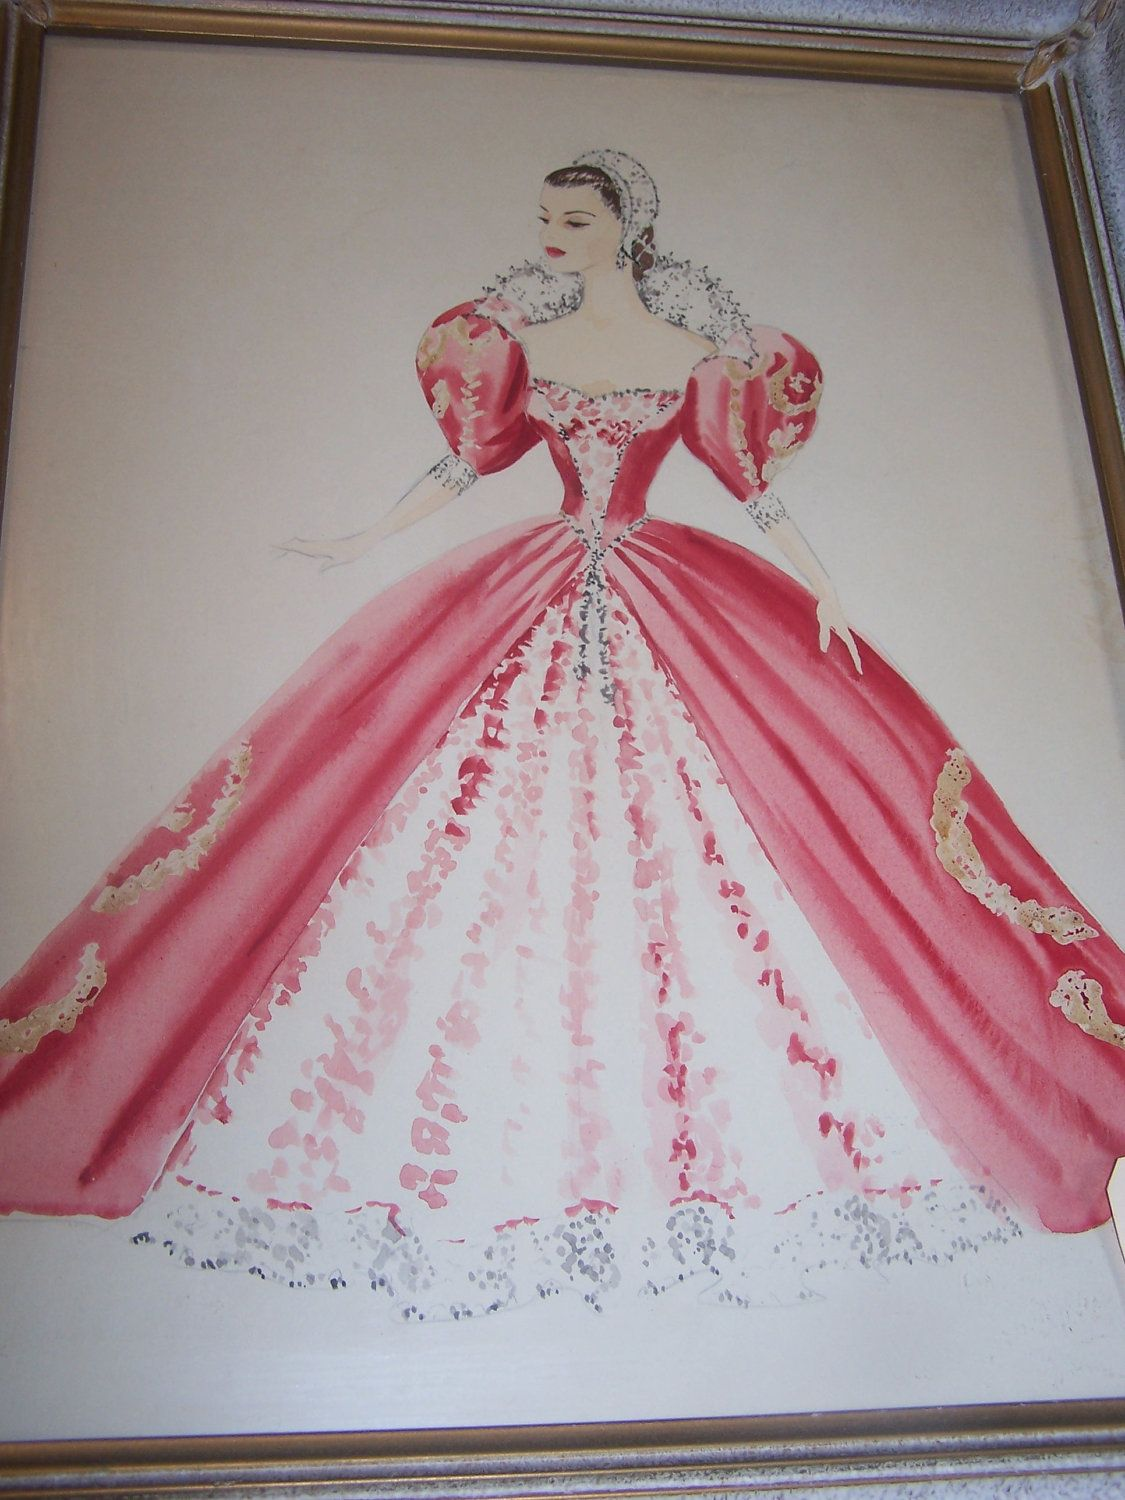 Pin By Rebecca Brown On Get Crafty Victorian Gowns Pink Ball Gown Victoria Costume [ 1500 x 1125 Pixel ]